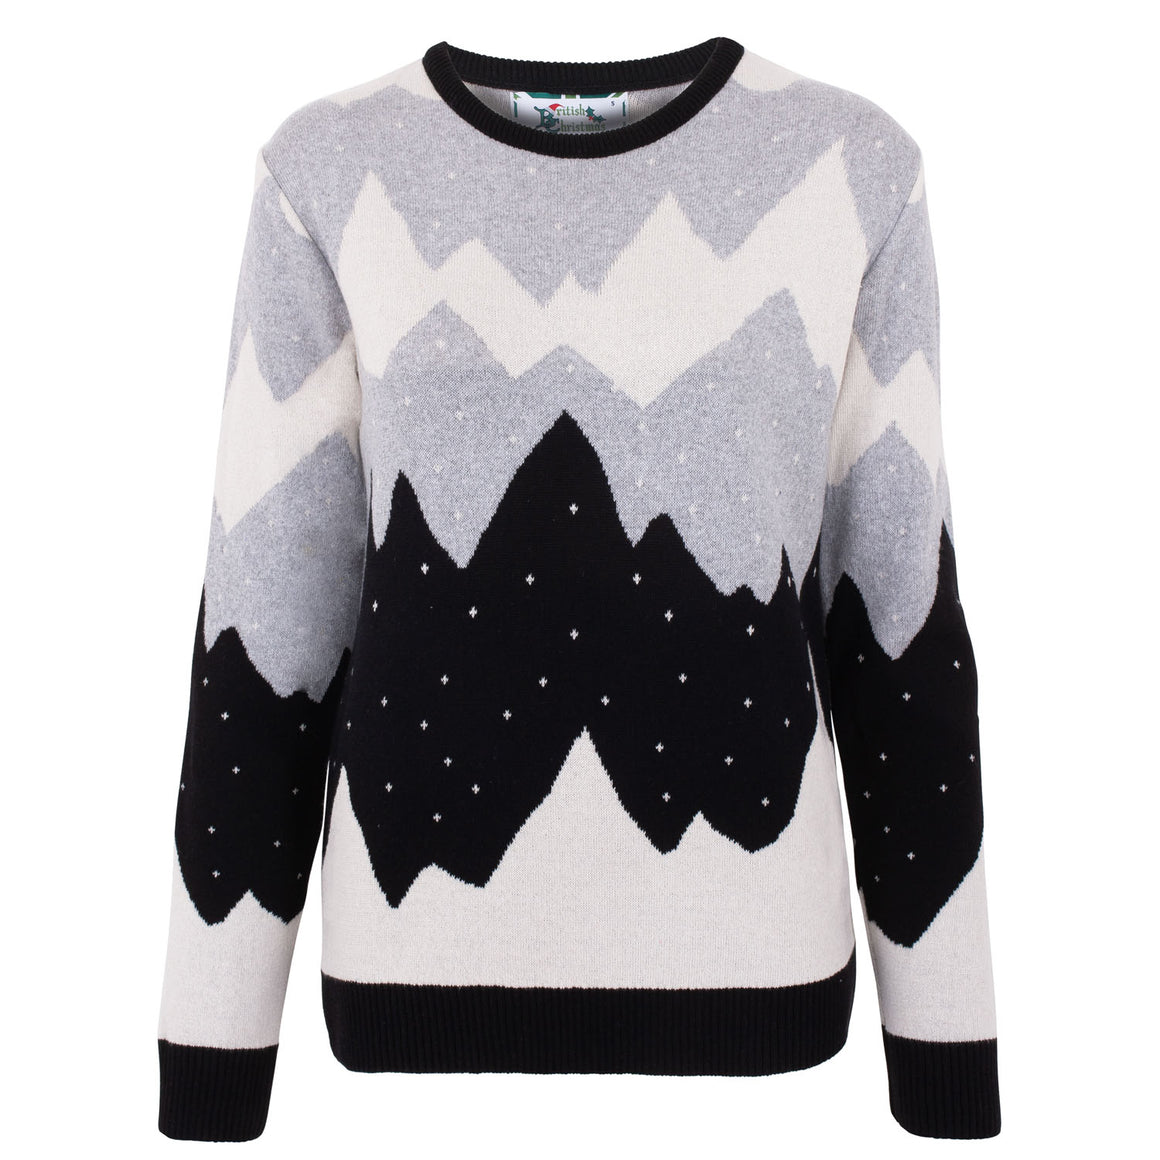 Mountain Peak Black Womens Eco Christmas Jumper